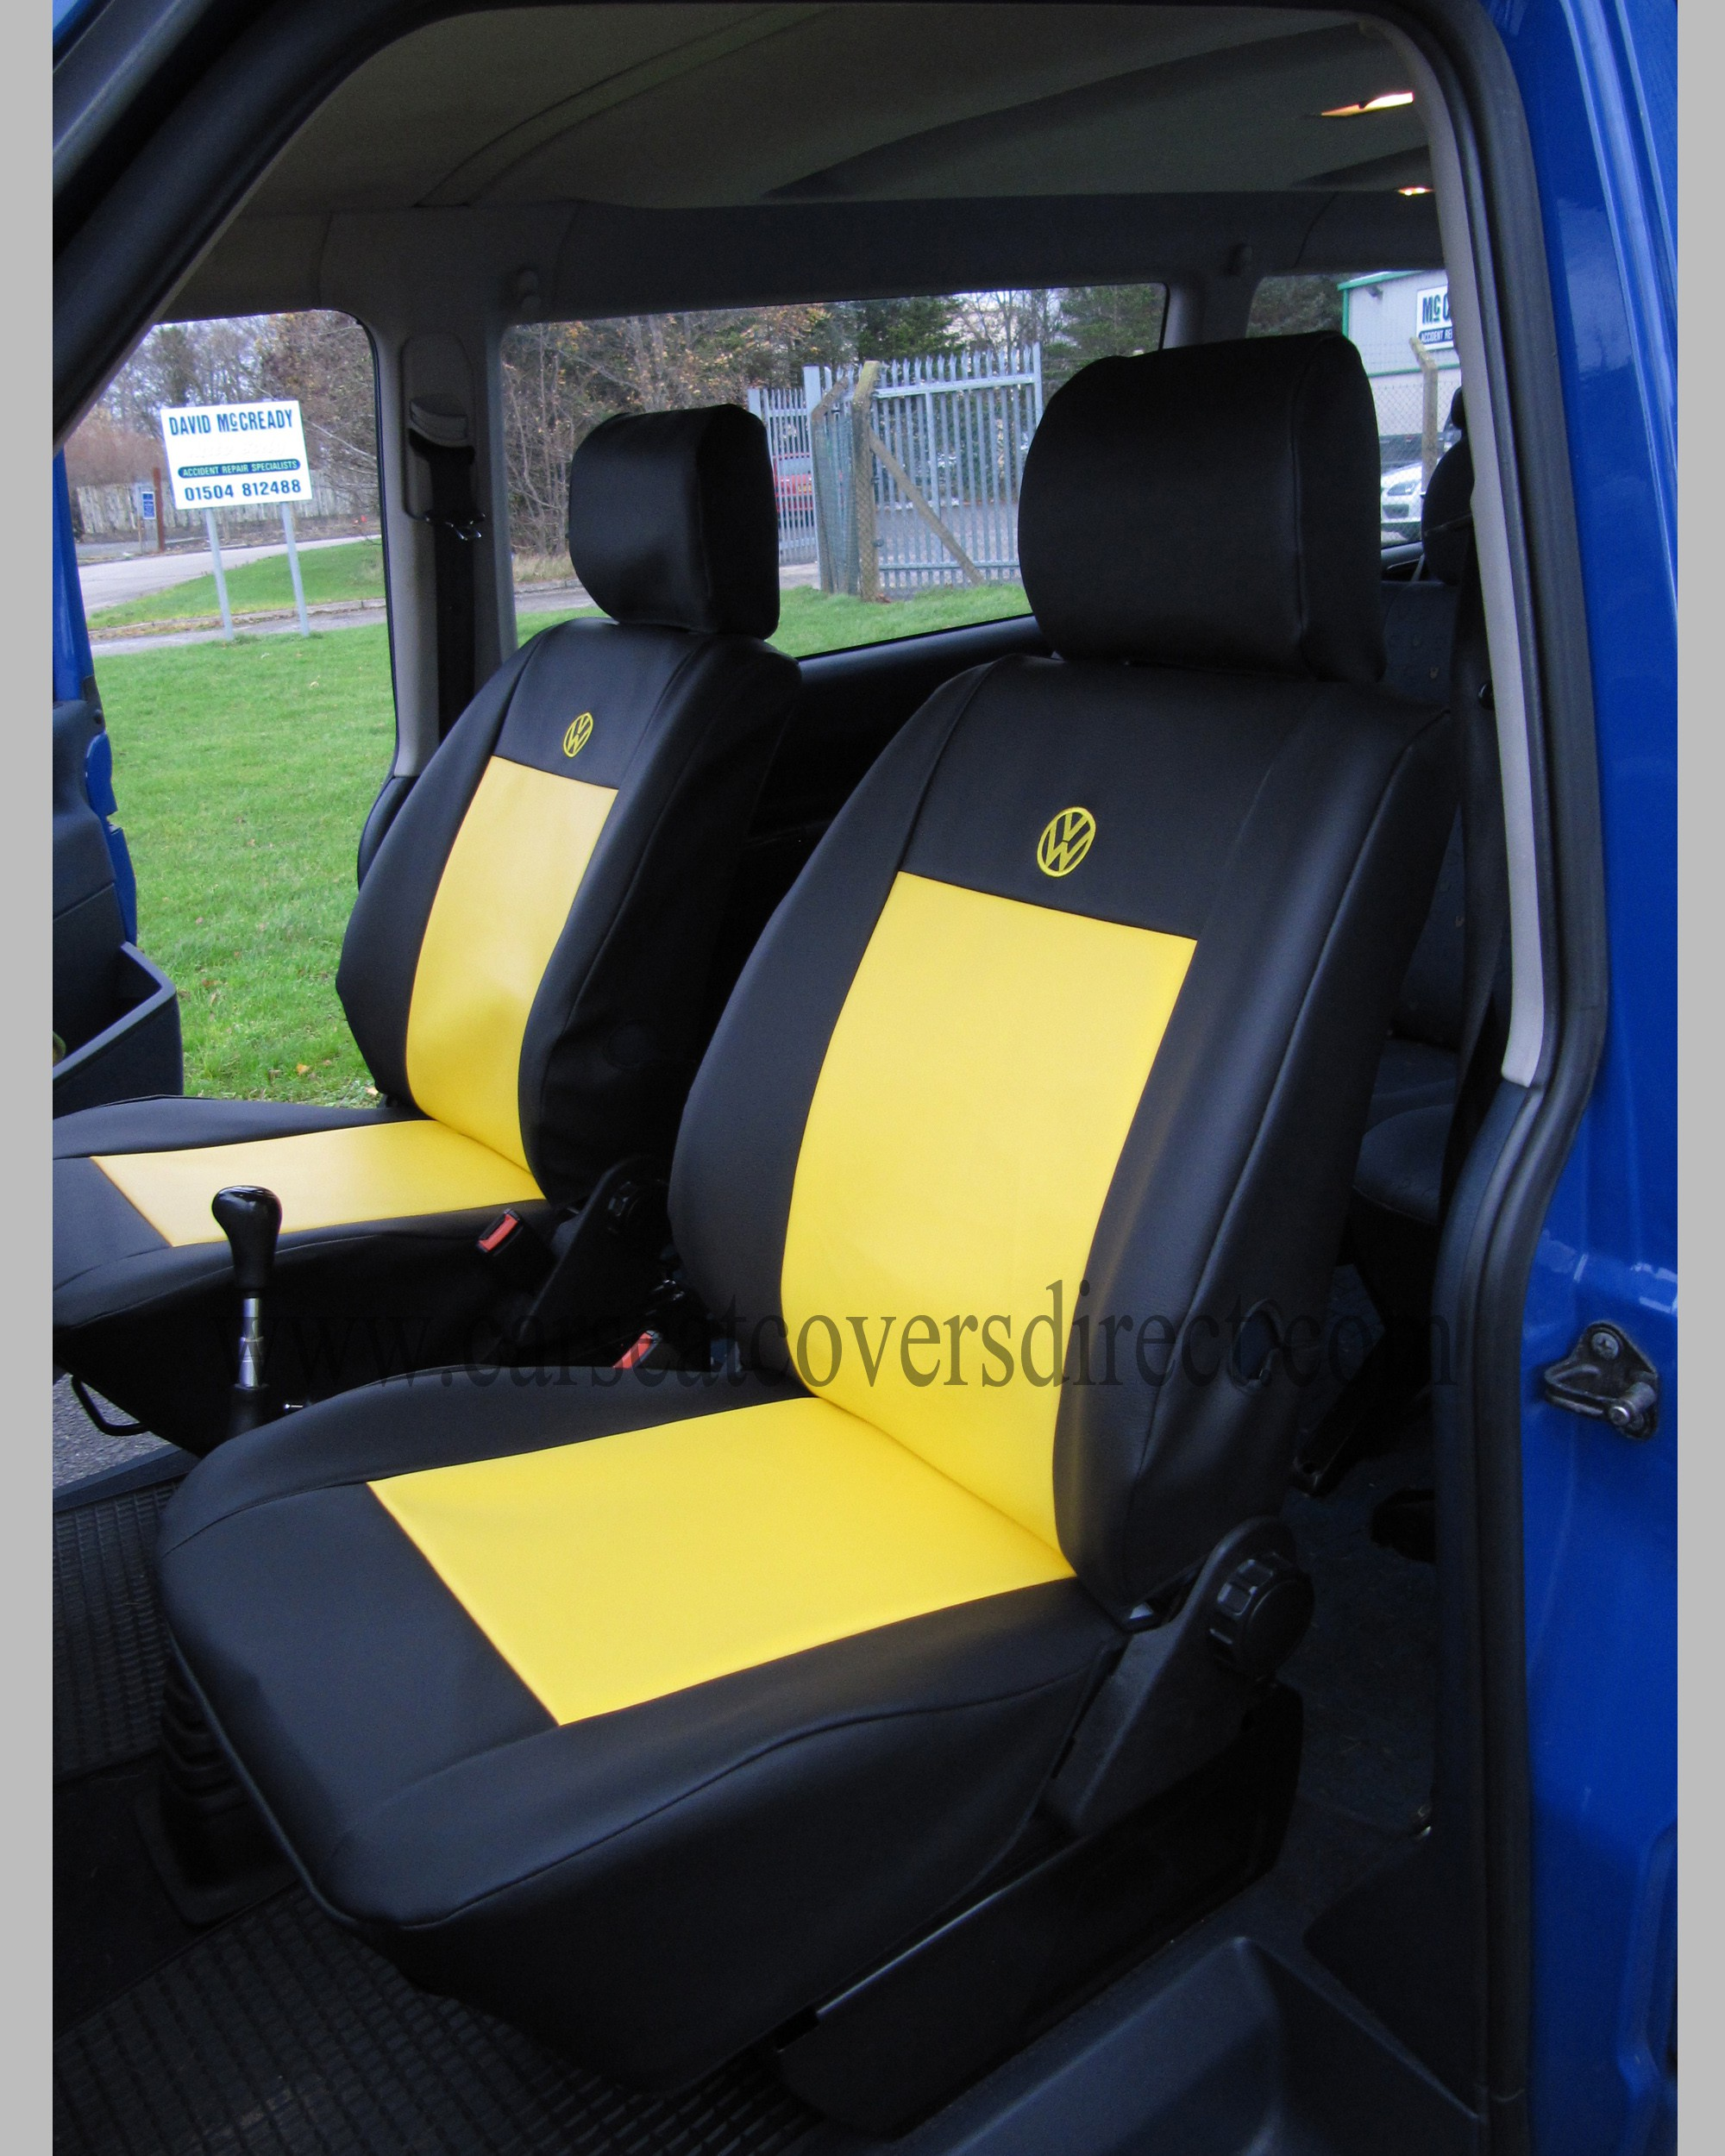 VOLKSWAGEN VW Transporter T4 black & yellow seat covers